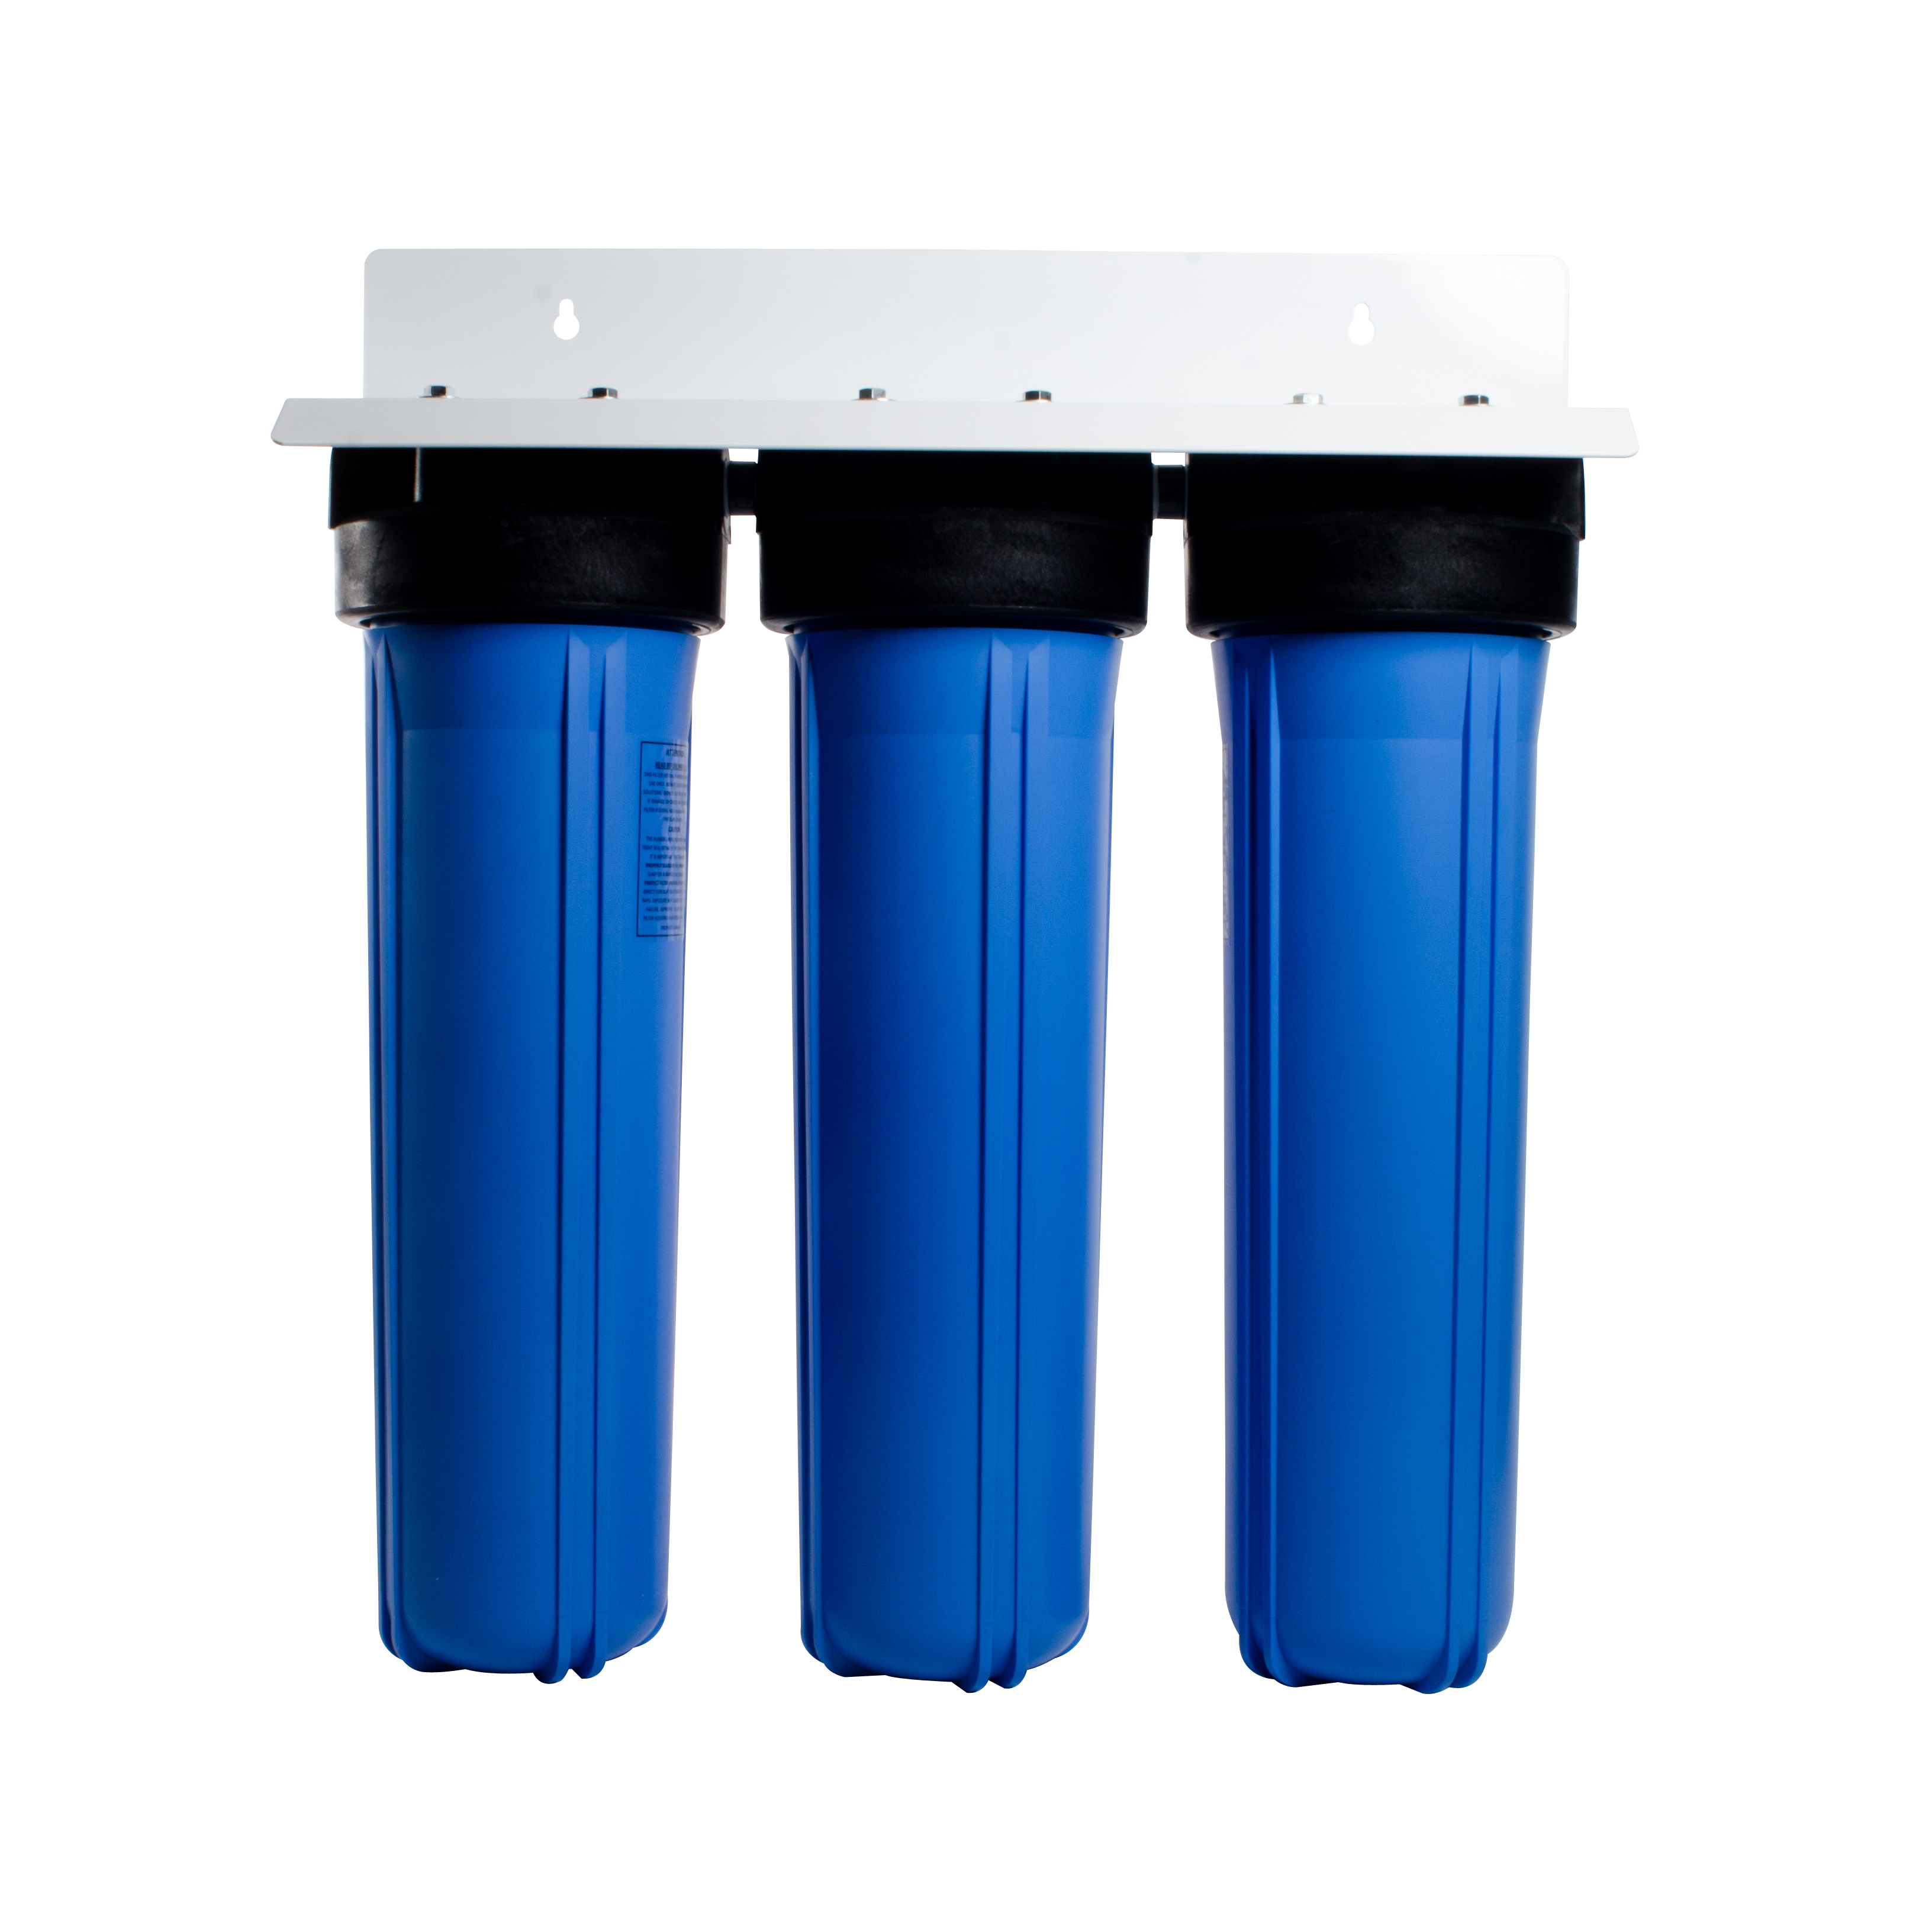 pura water pages uv system puriteam treatment filter systems filtration countertop